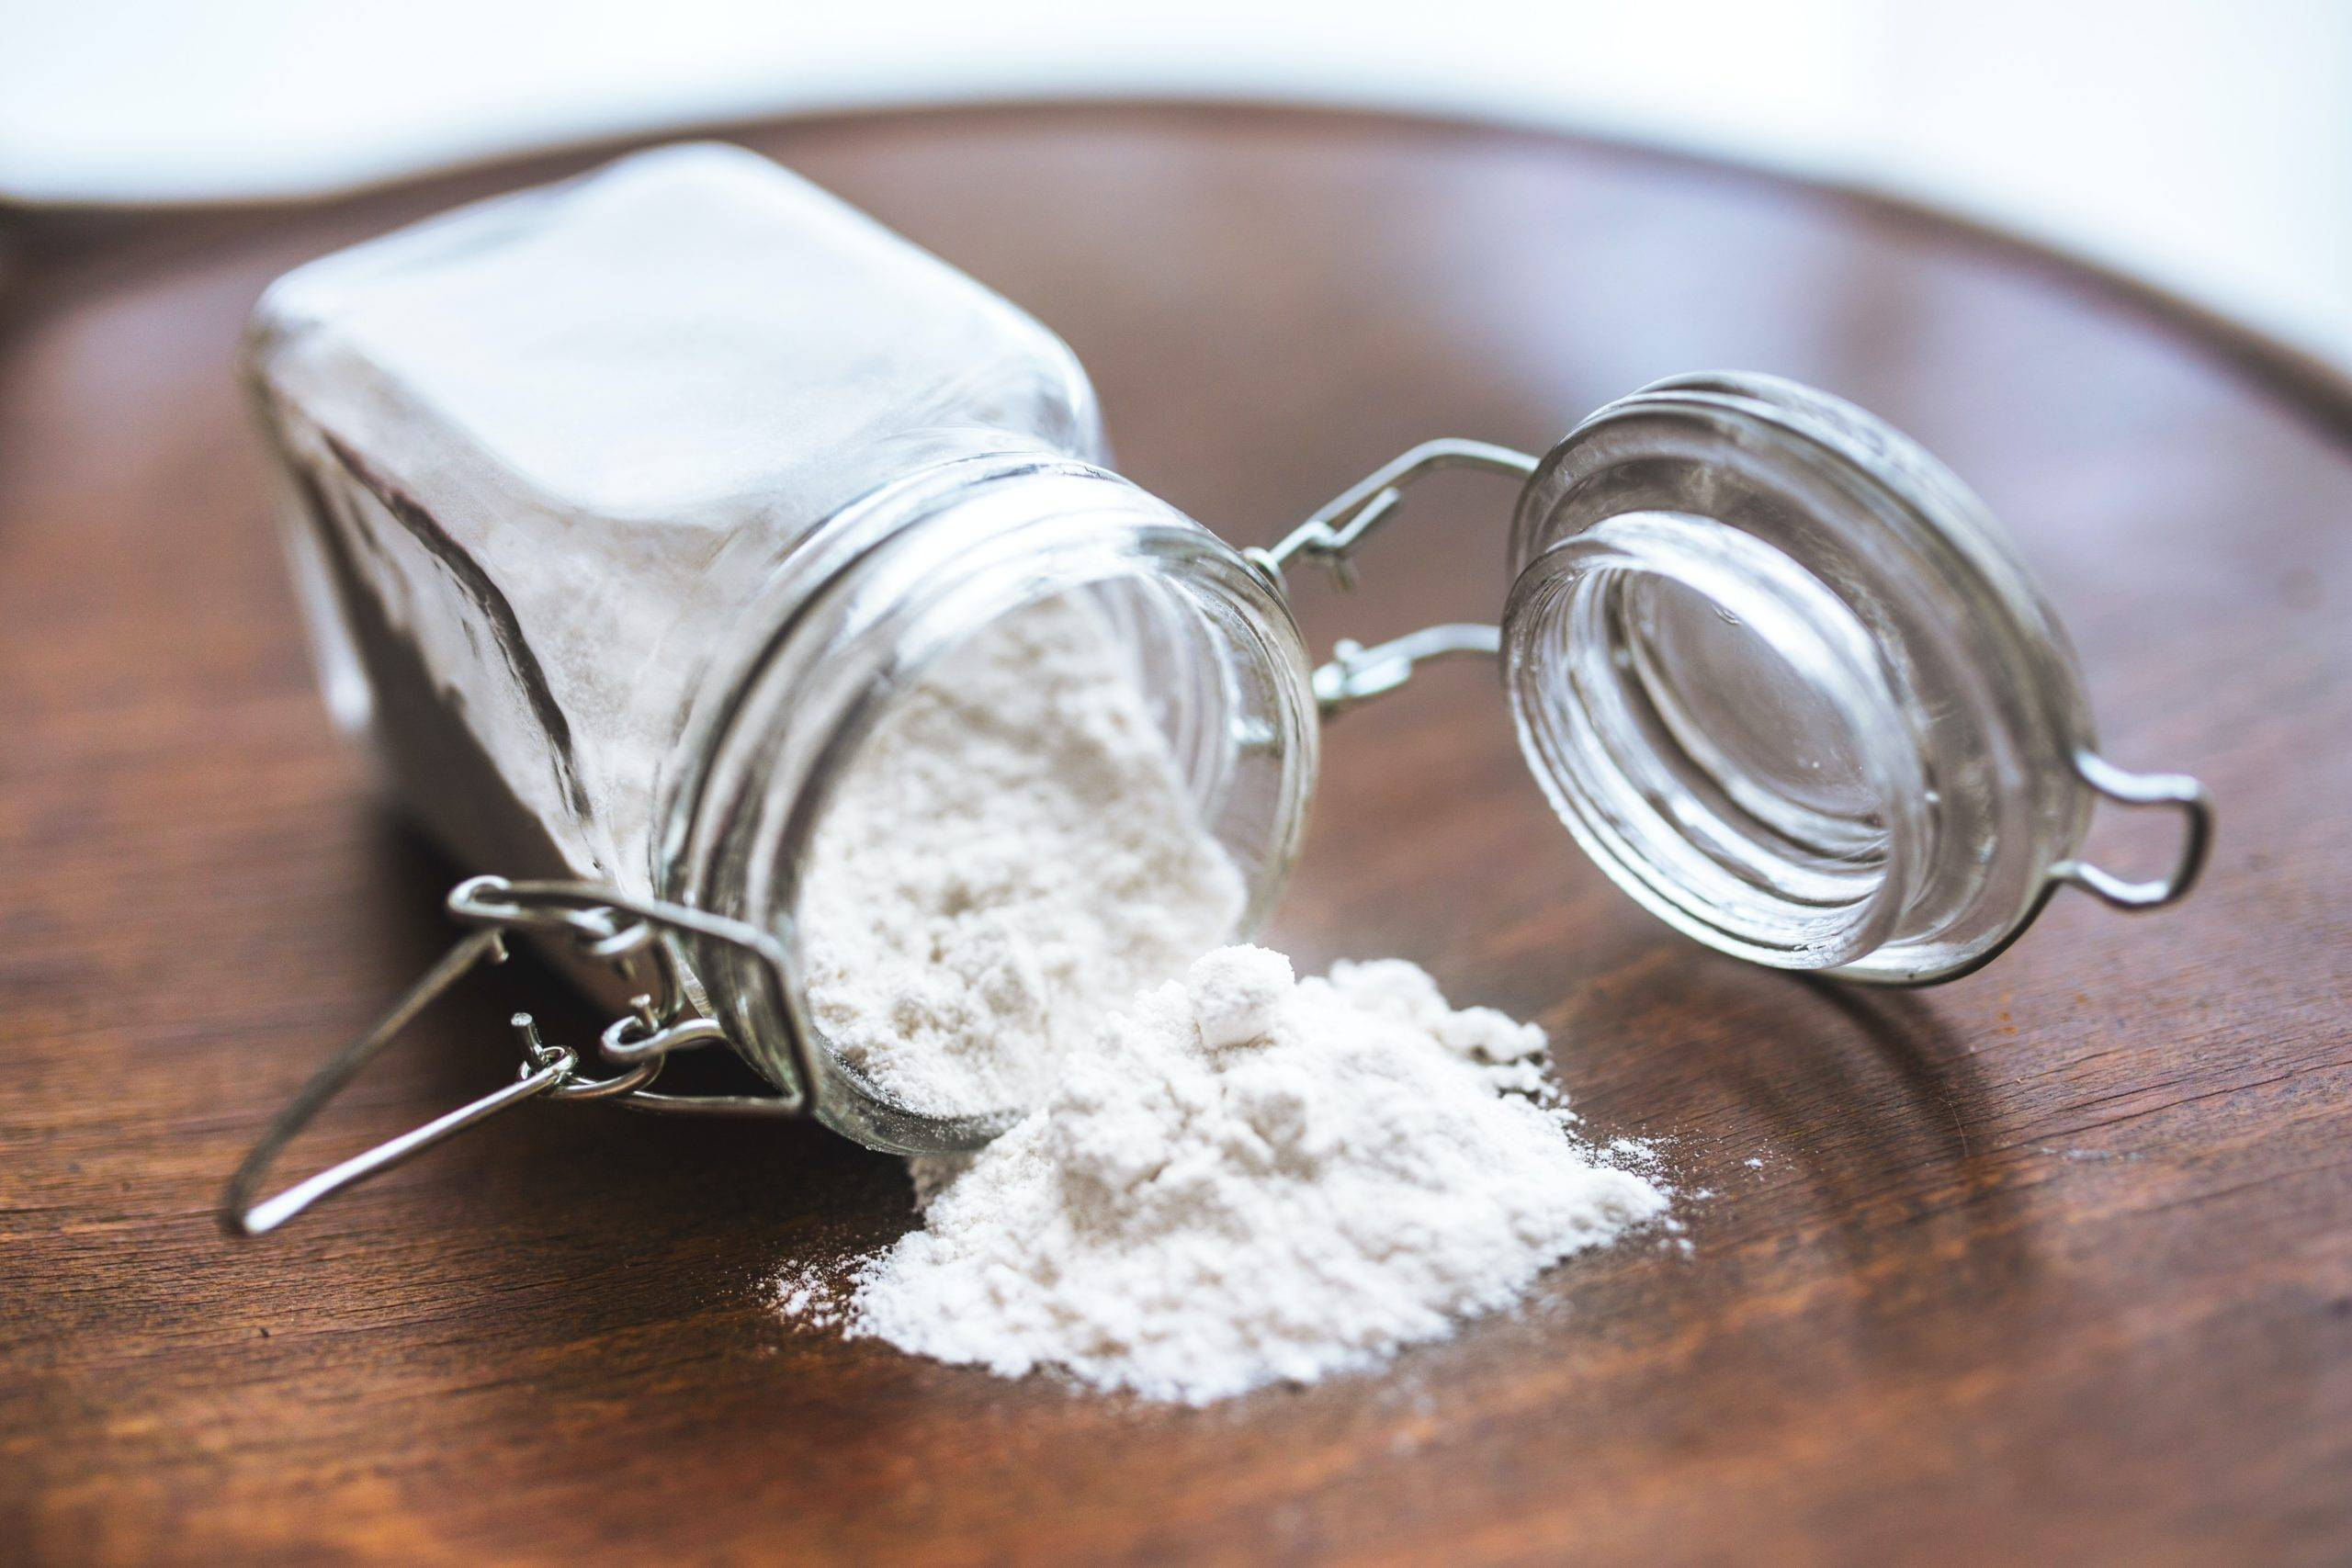 White powder scattered on a table from jar